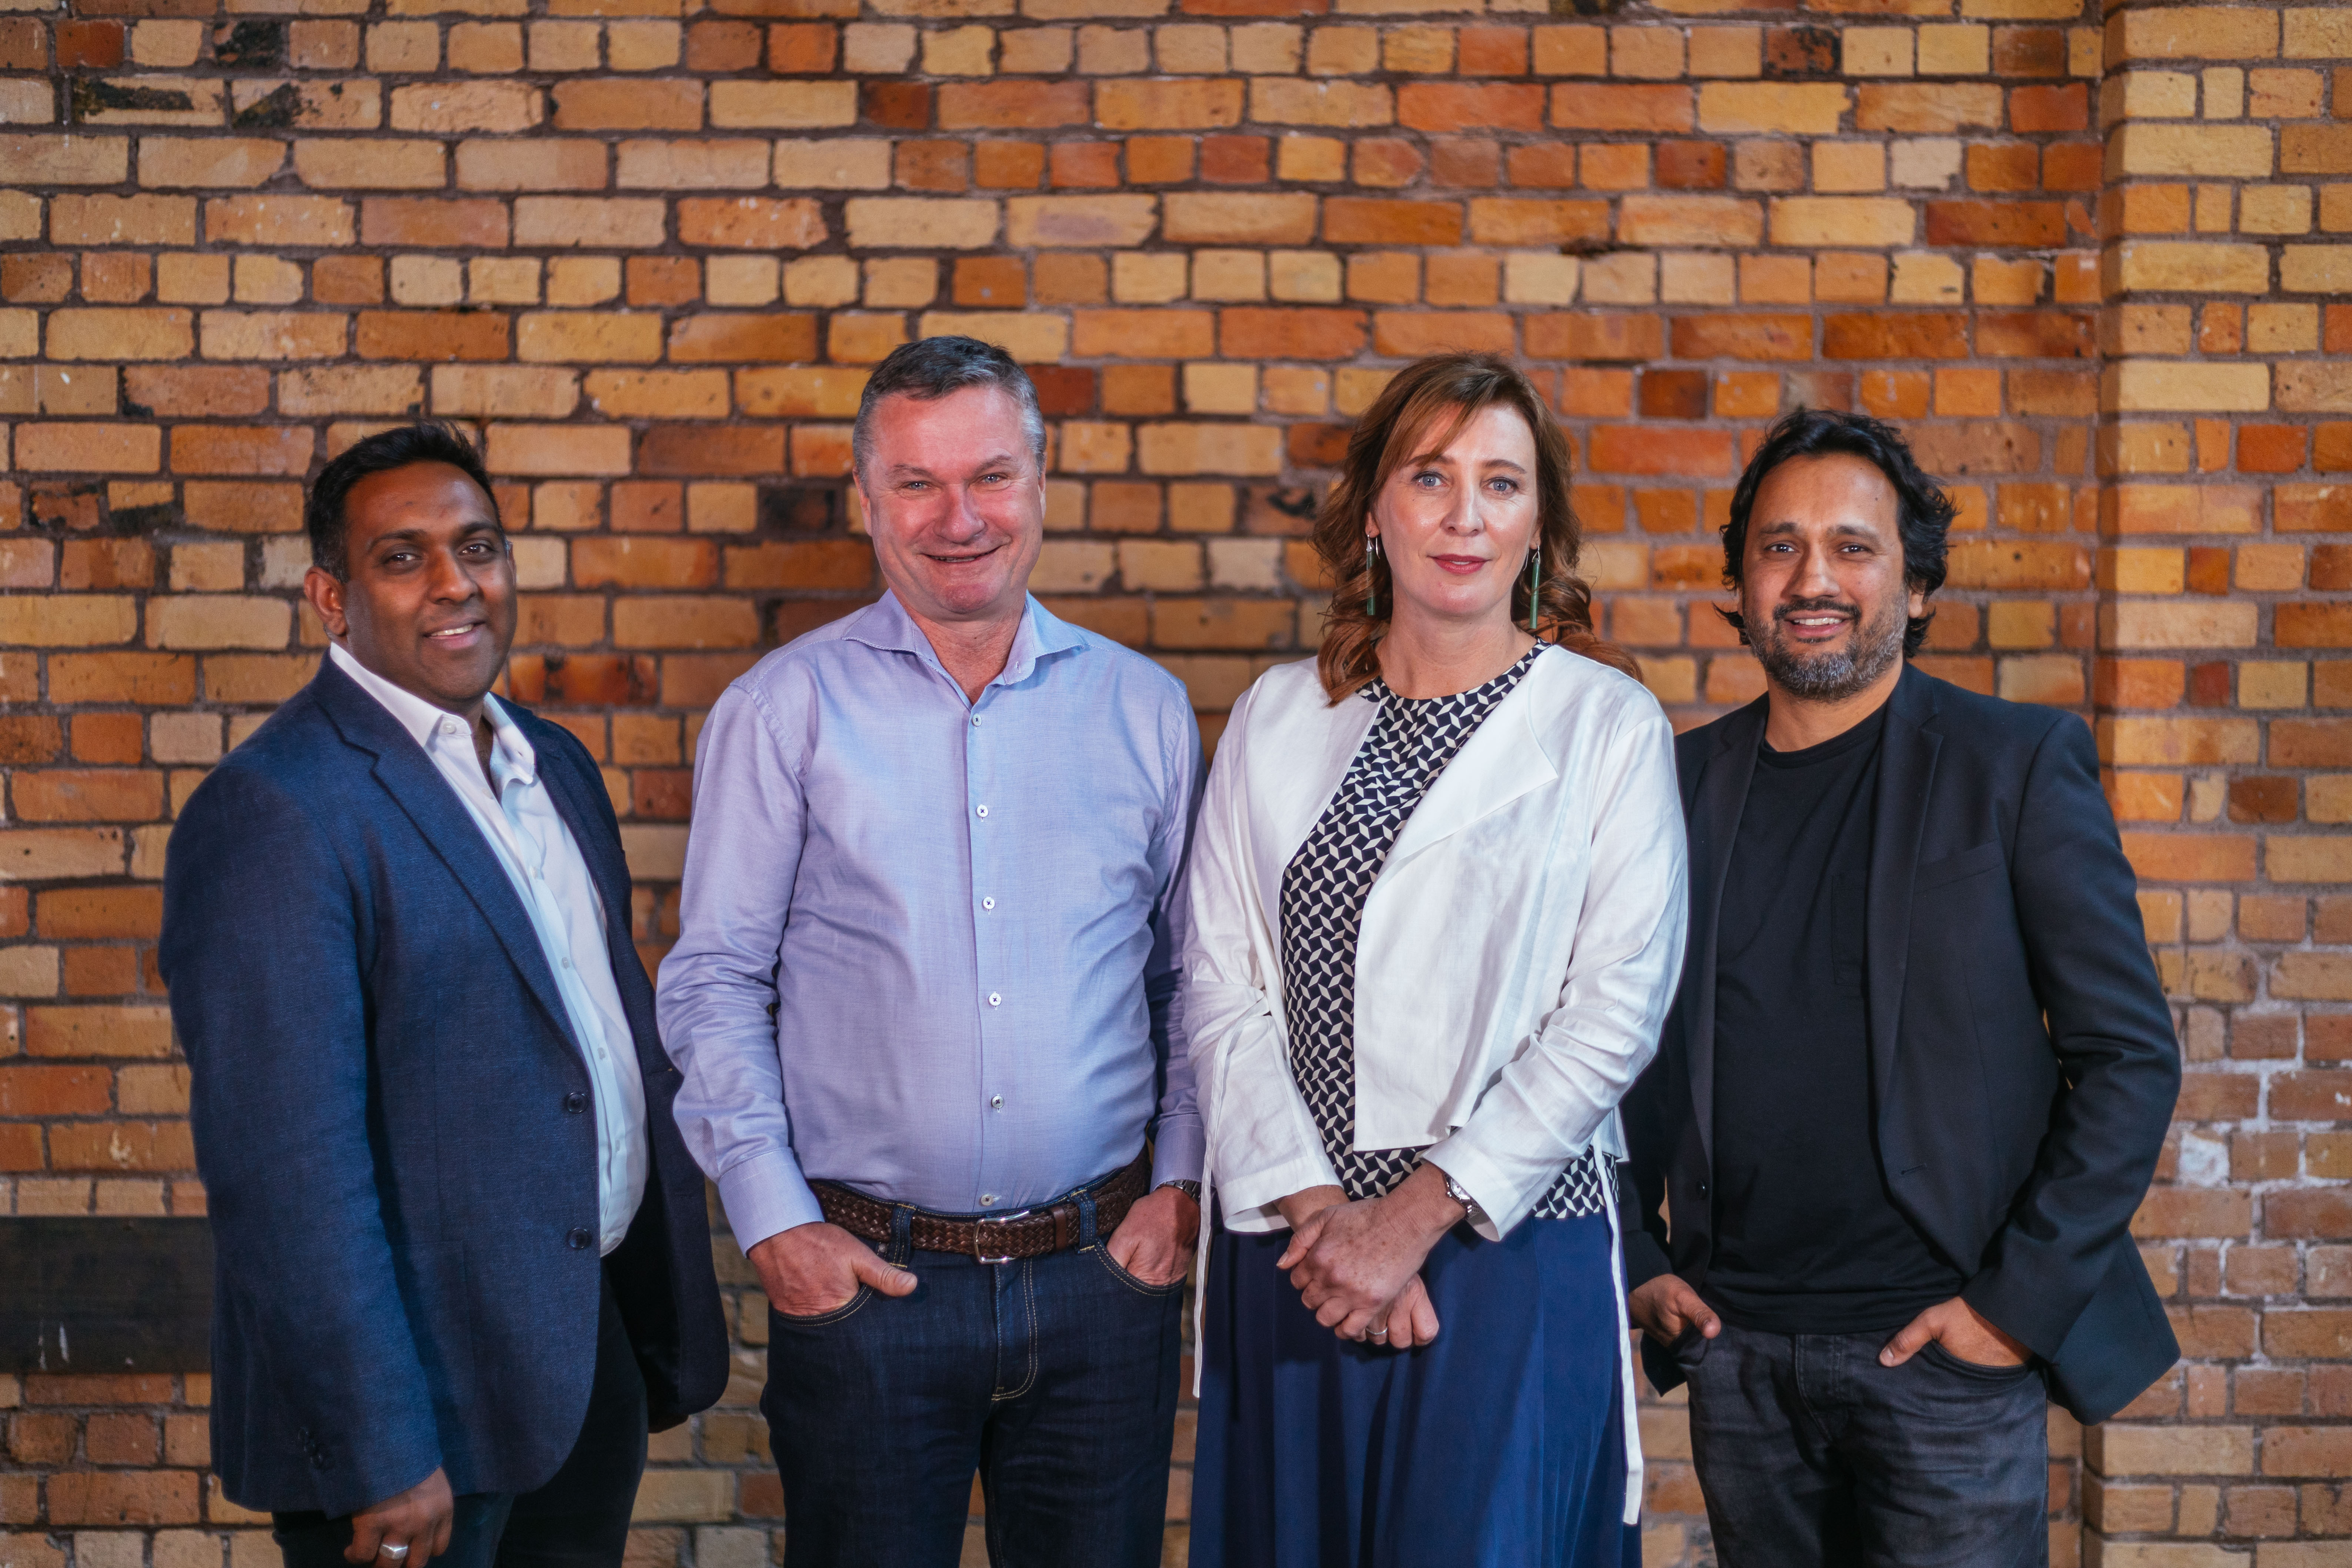 Publicis Groupe continues Kiwi expansion launching Digitas NZ and acquiring Affinity ID